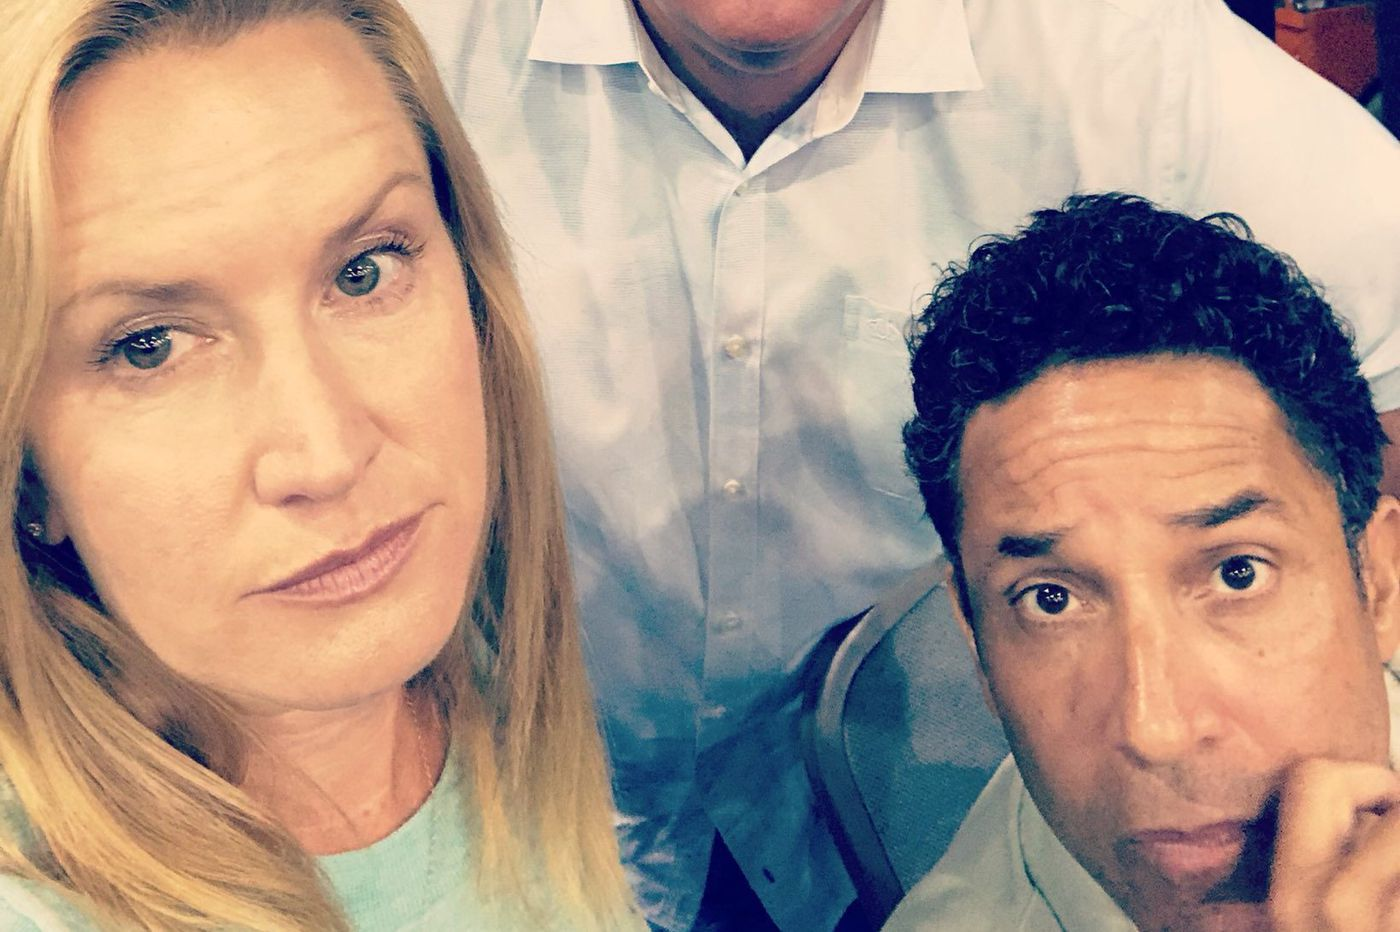 Cast members of 'The Office' reunited in Philly over the weekend